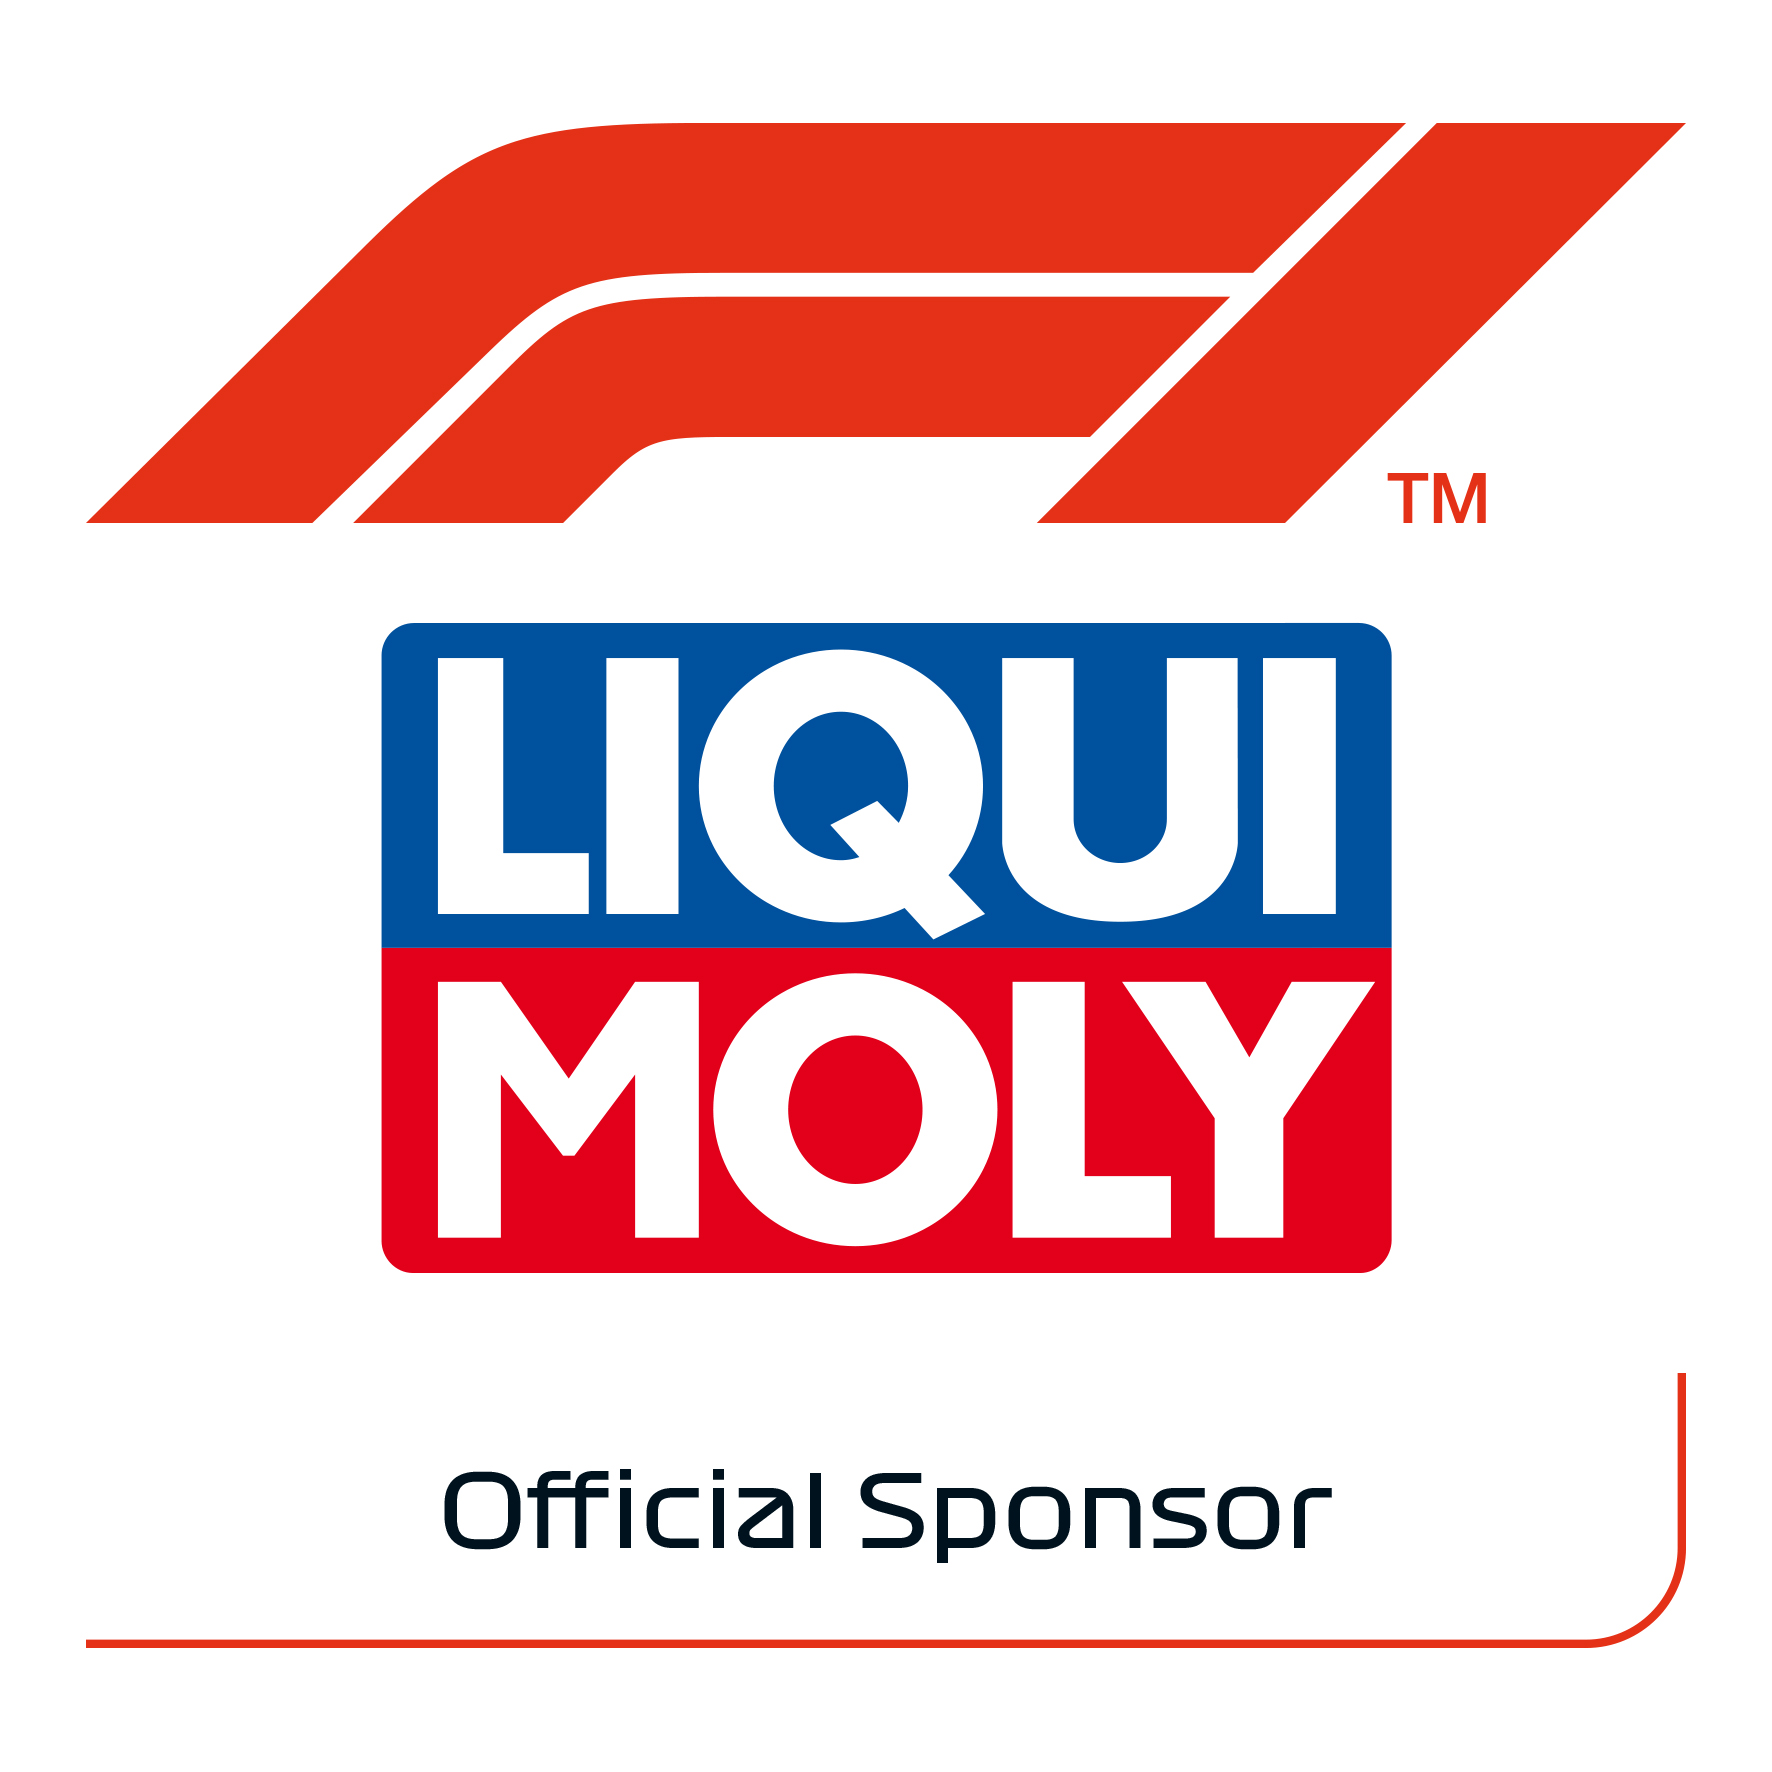 https://www.liqui-moly.de/fileadmin/user_upload/Presse/Pressemitteilungen_DE/2020/03/F1_Liqui_Moly_Official-5.jpg